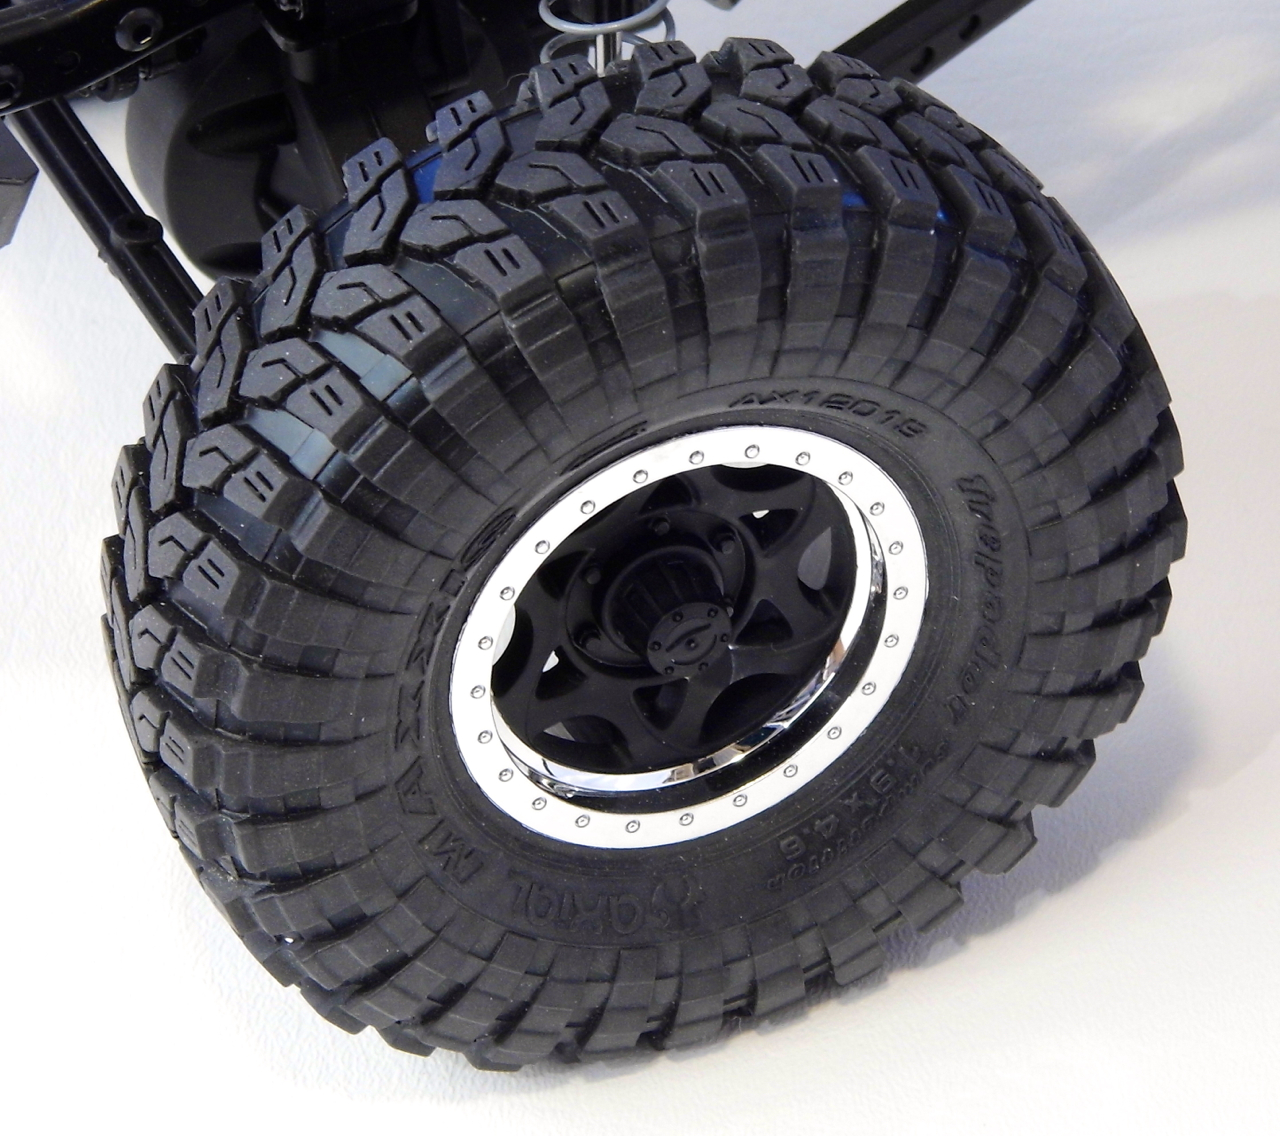 Axial 2012 Jeep Wrangler Unlimited Rubicon Scx10 Rtr Review Rc Wiring Pin Truck Stop